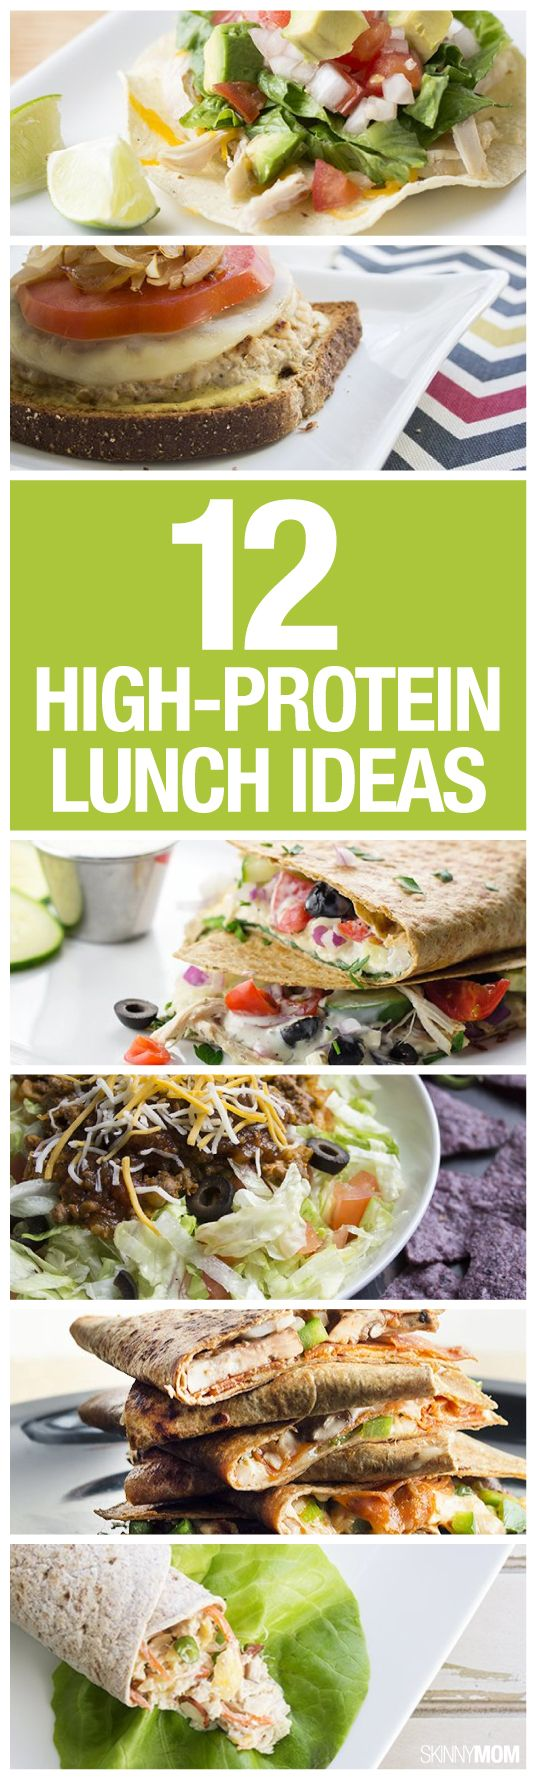 cheap sports shoes online shopping india Try these 12 high protein lunches.